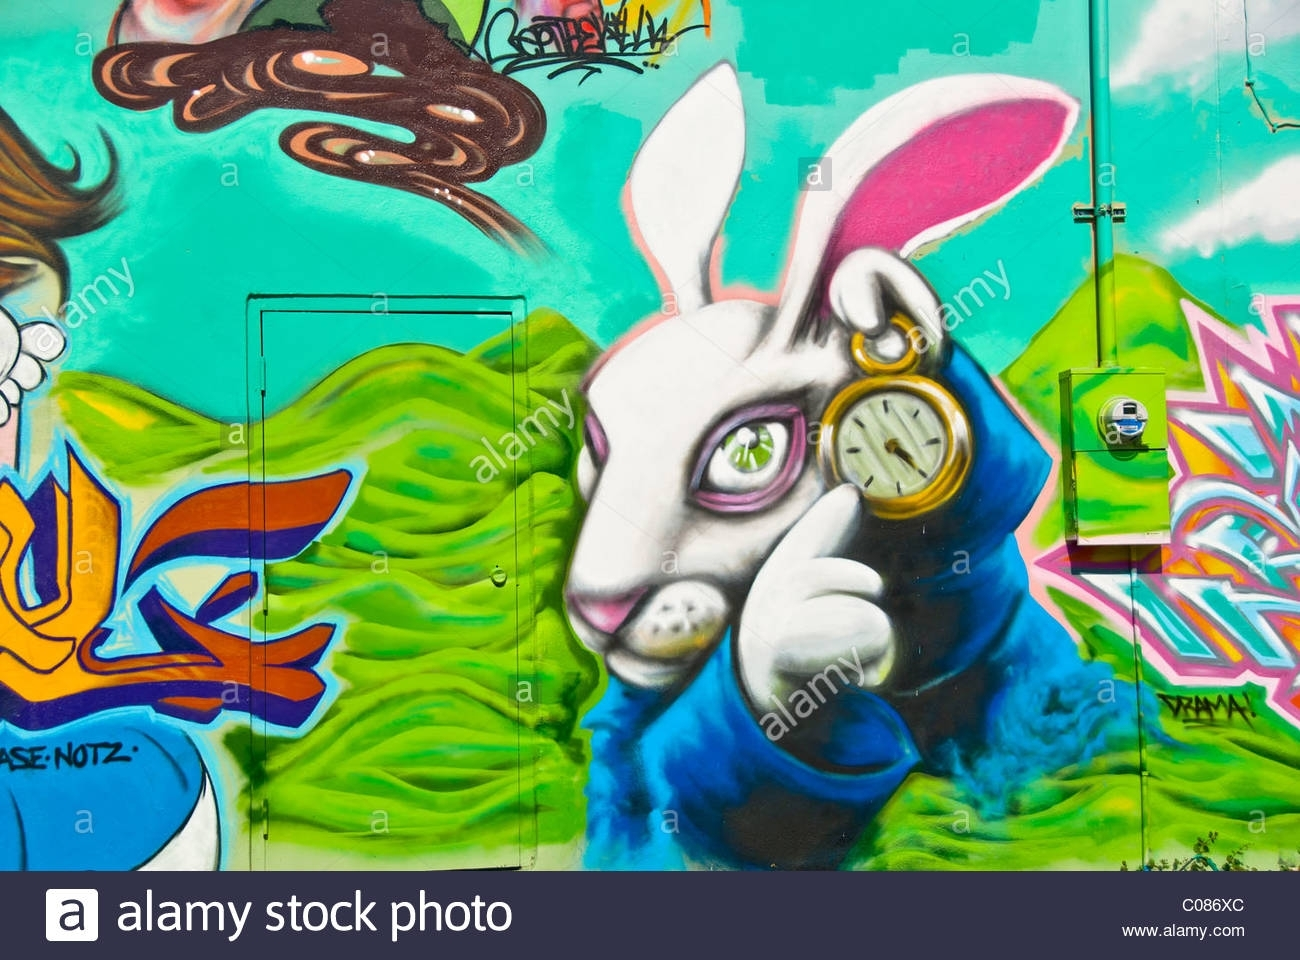 "Alice In Wonderland"" Graffiti Wall Art Mural Detail In Wynwood Art Within 2018 Florida Wall Art (View 1 of 20)"